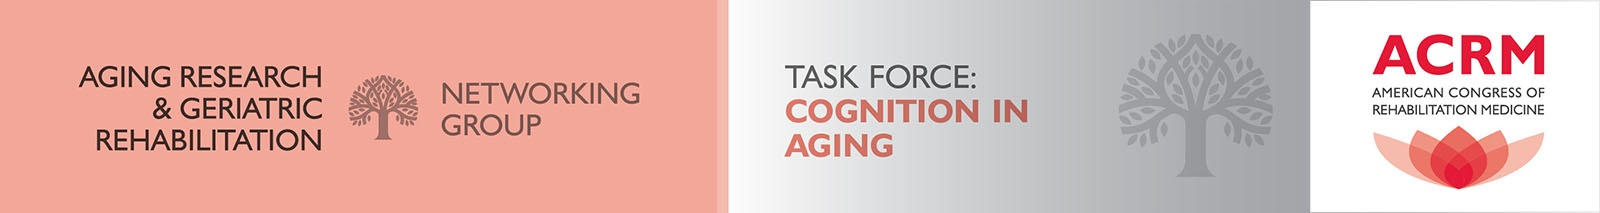 Aging Research and Geriatric Rehabilitation: TASK FORCE: Cognition in Aging